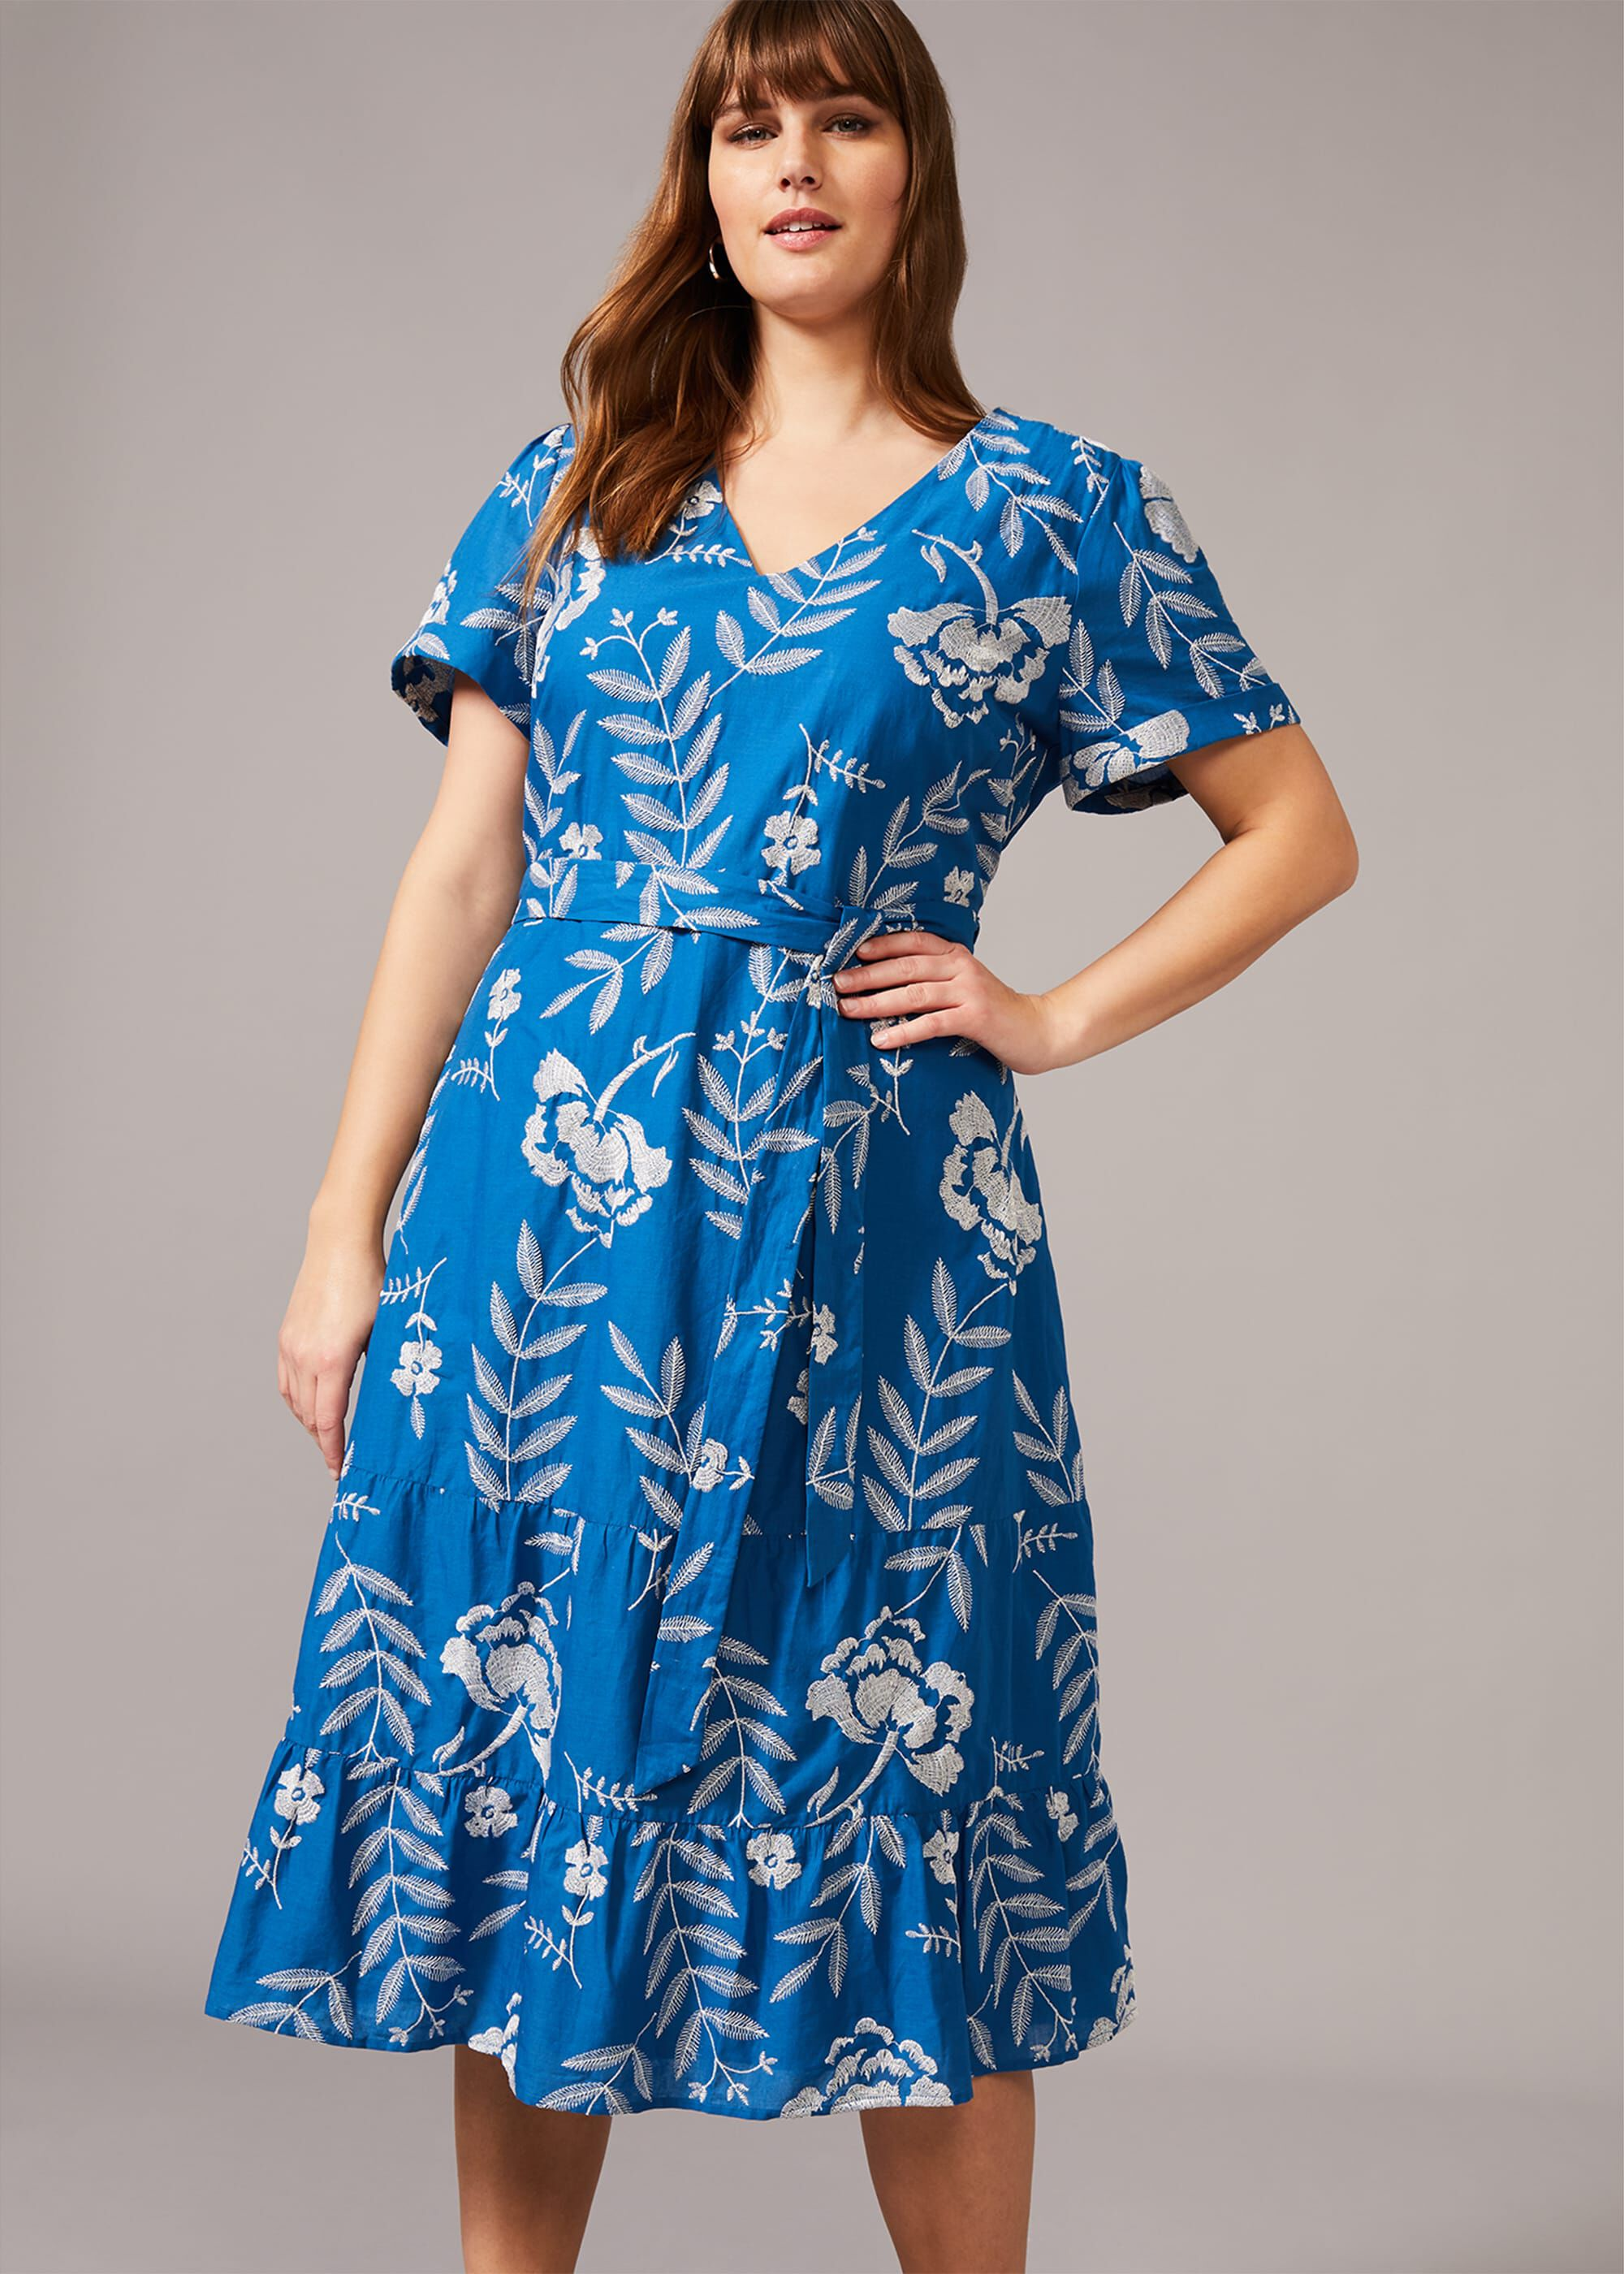 Studio 8 Madelyn Floral Embroidered Dress, Blue, Fit & Flare, Occasion Dress